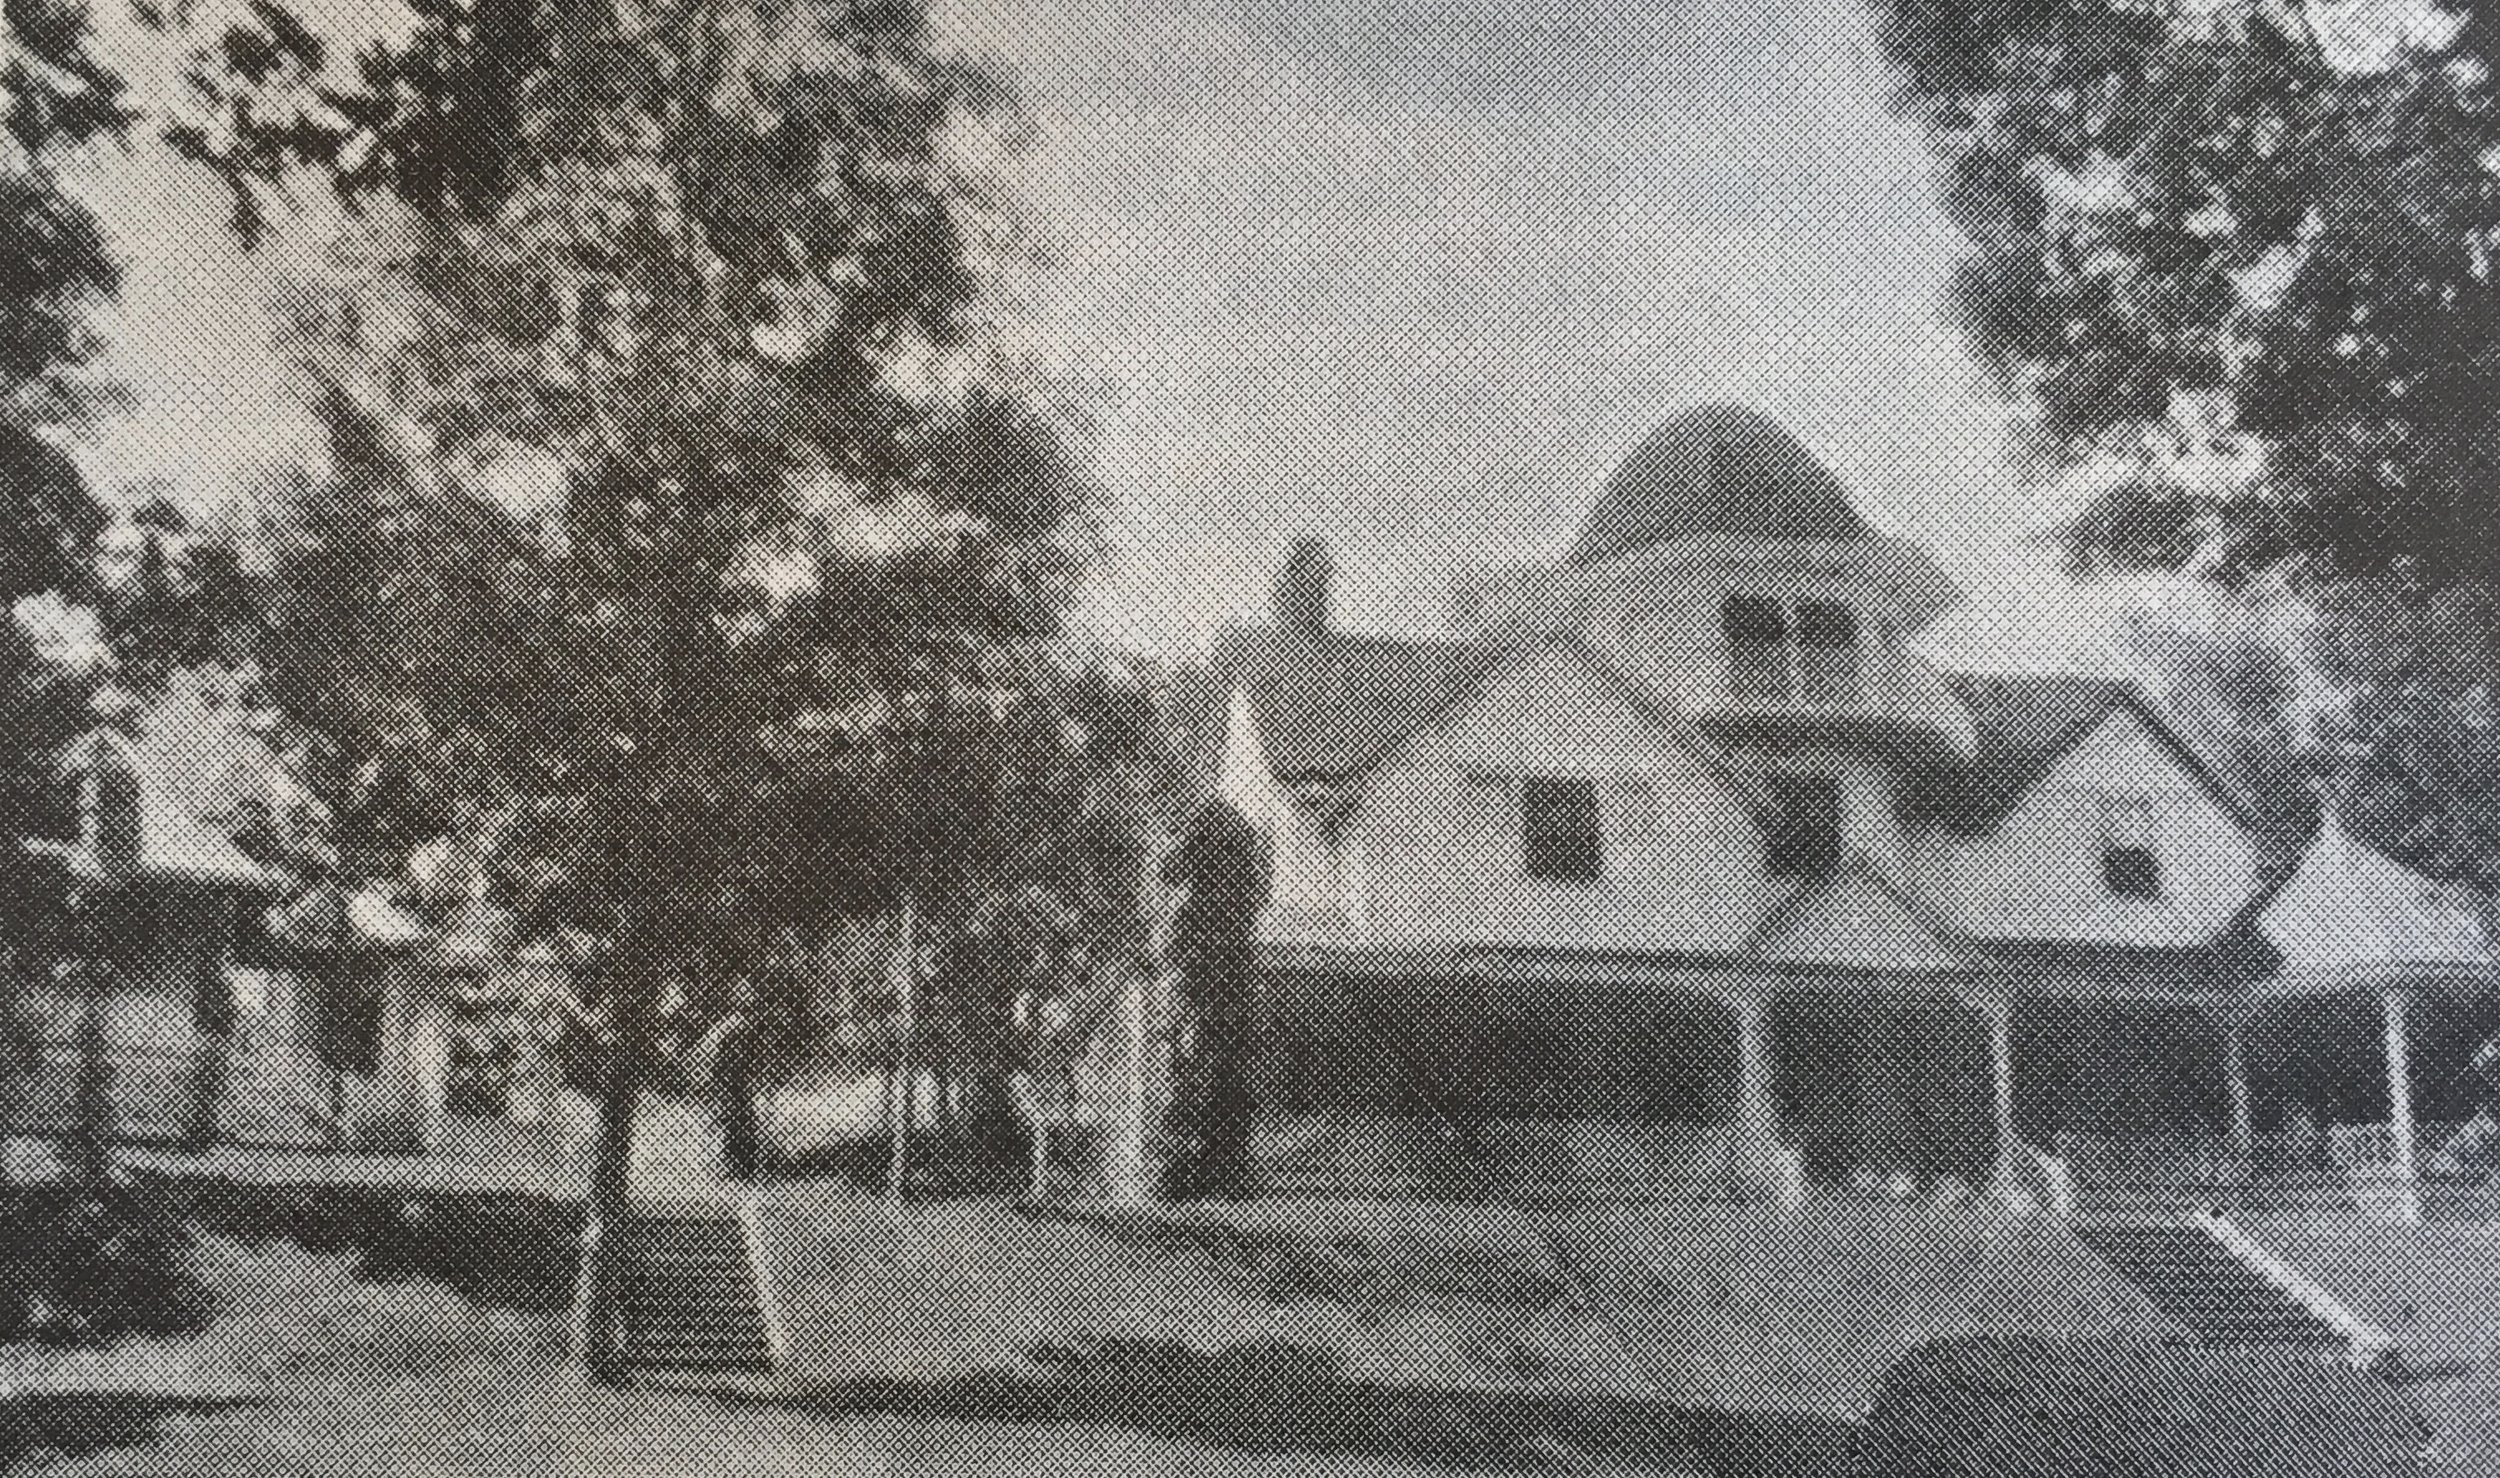 Linn Haven,  residence of O.D. Wetherell (on the West) in 1895.